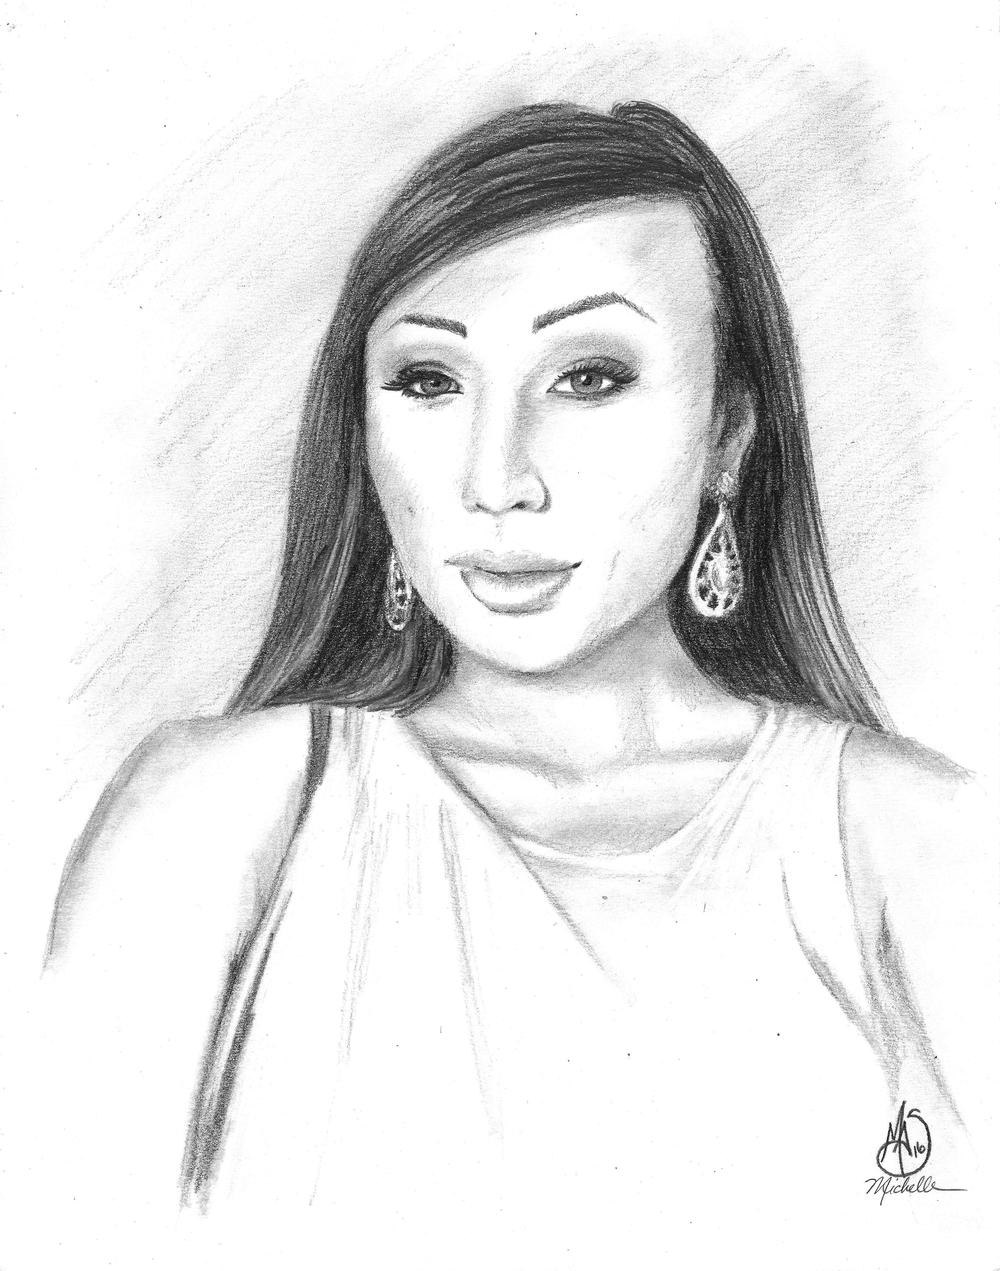 Michelle Shepperd,  Venus Lux , 2016, graphite on vellum, 14 x 11 in